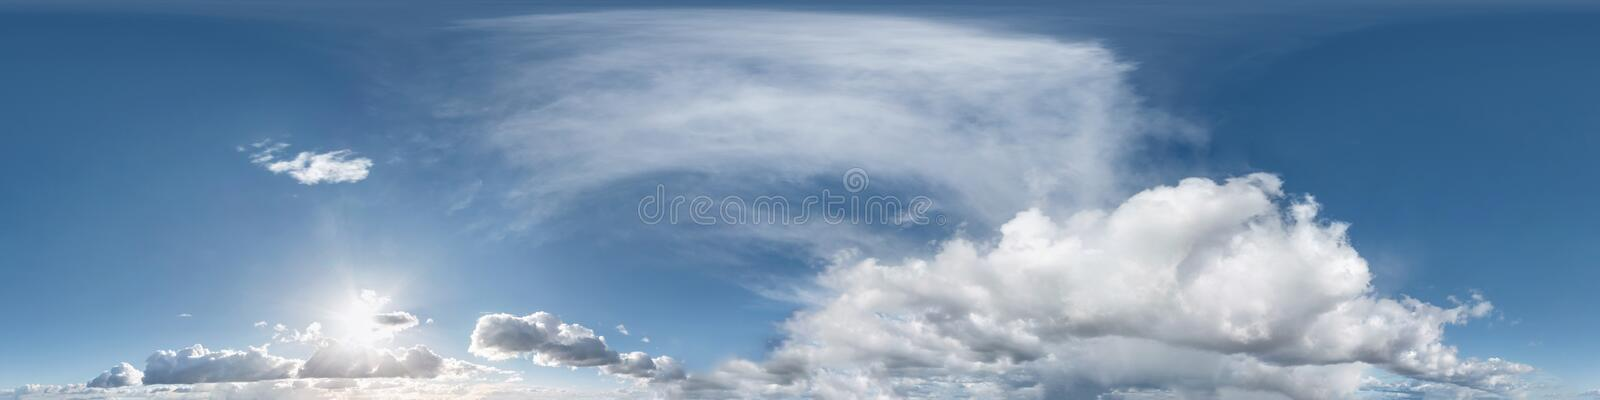 Seamless evening sky before sunset hdri panorama 360 degrees angle view with beautiful clouds  with zenith for use in 3d graphics. As sky dome or edit drone royalty free stock photo